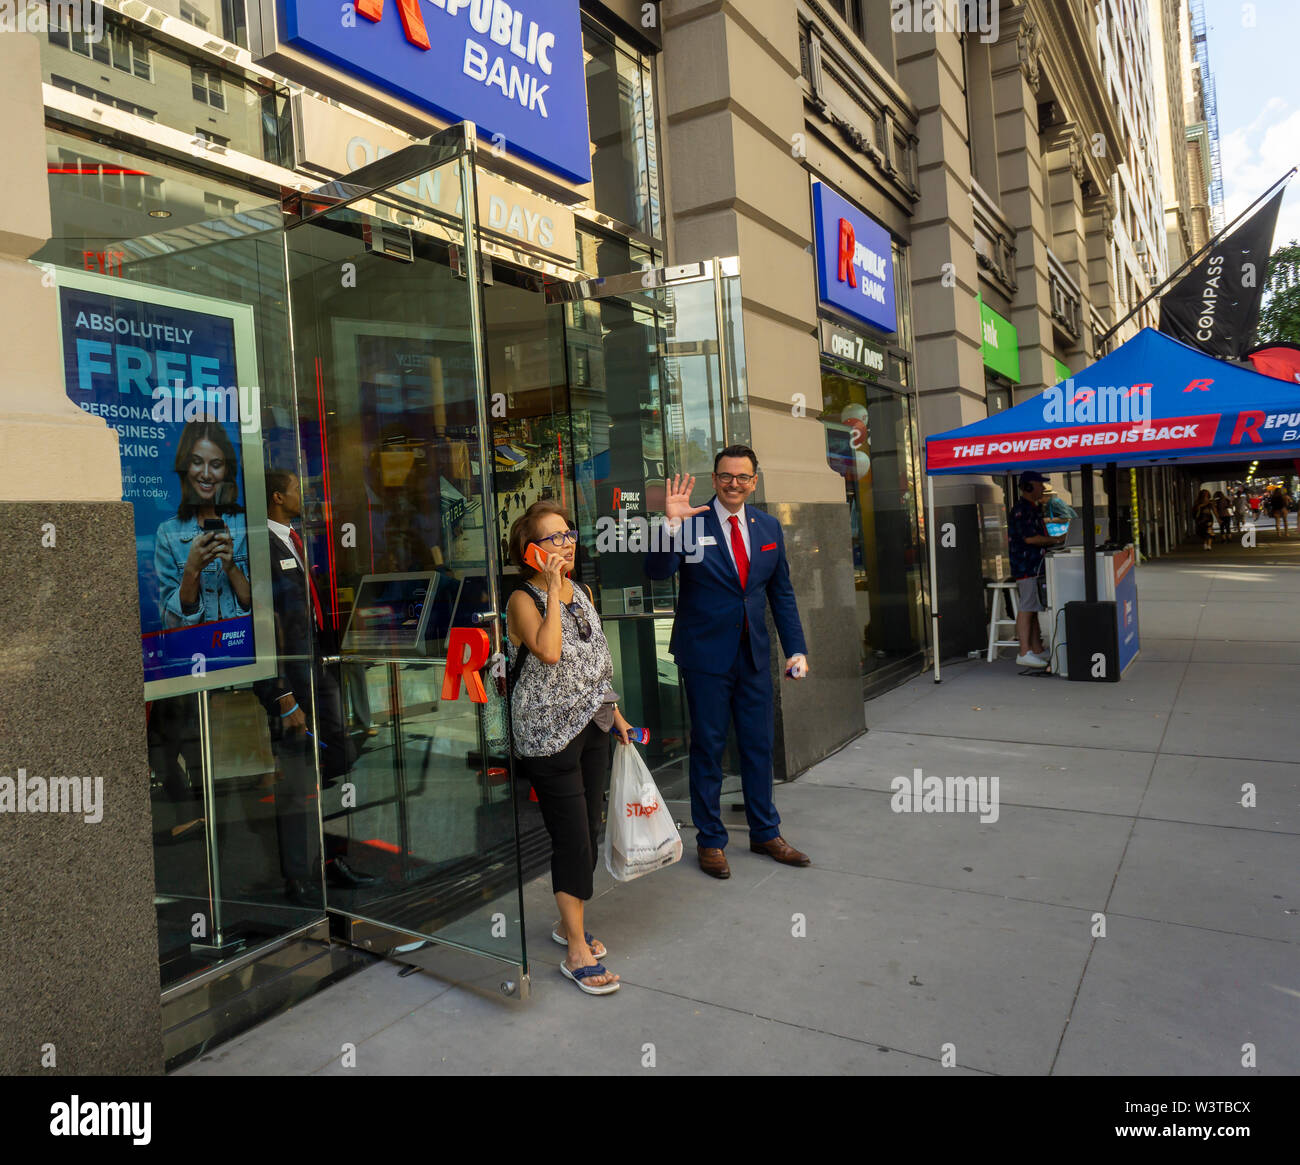 A branch of Republic Bank in Greenwich Village in New York on its grand opening day, Friday, July 12, 2019. The bank was started by Vernon Hill, former CEO of Commerce Bank which later was acquired by TD Bank. Color scheme, decor and logos and fonts are similar to graphics used by Commerce Bank. (© Richard B. Levine) - Stock Image